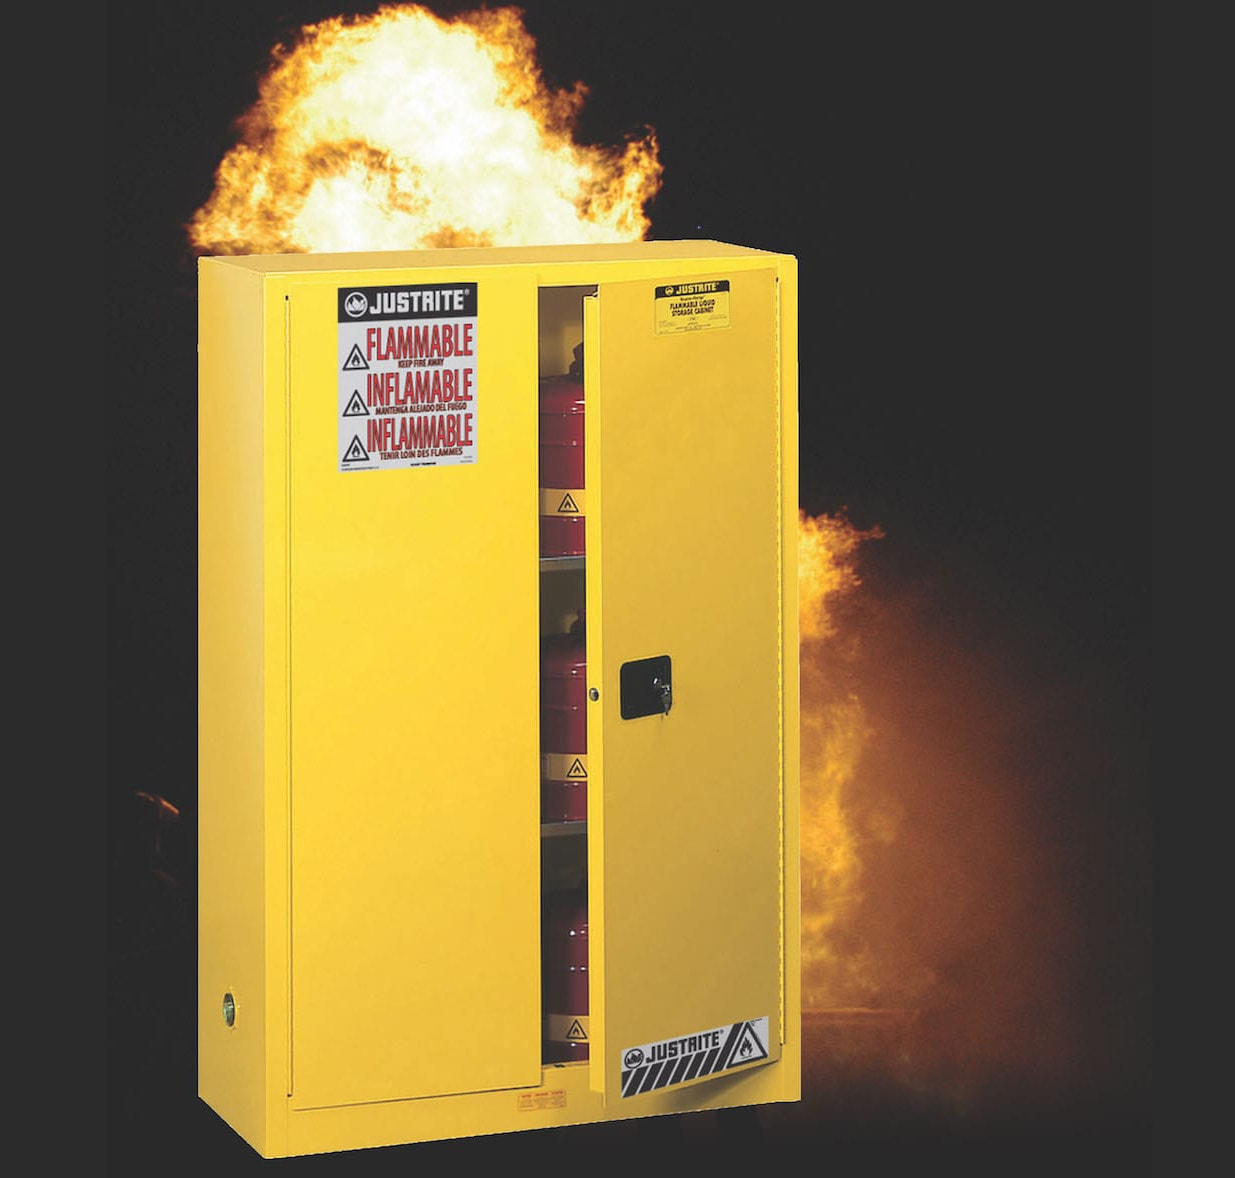 The Pallet Provides Wood Fuel To Burn. If The Pallet Fails In A Fire, The  Cabinet Could Topple, Contributing Exponentially To The Fireu0027s Potential.